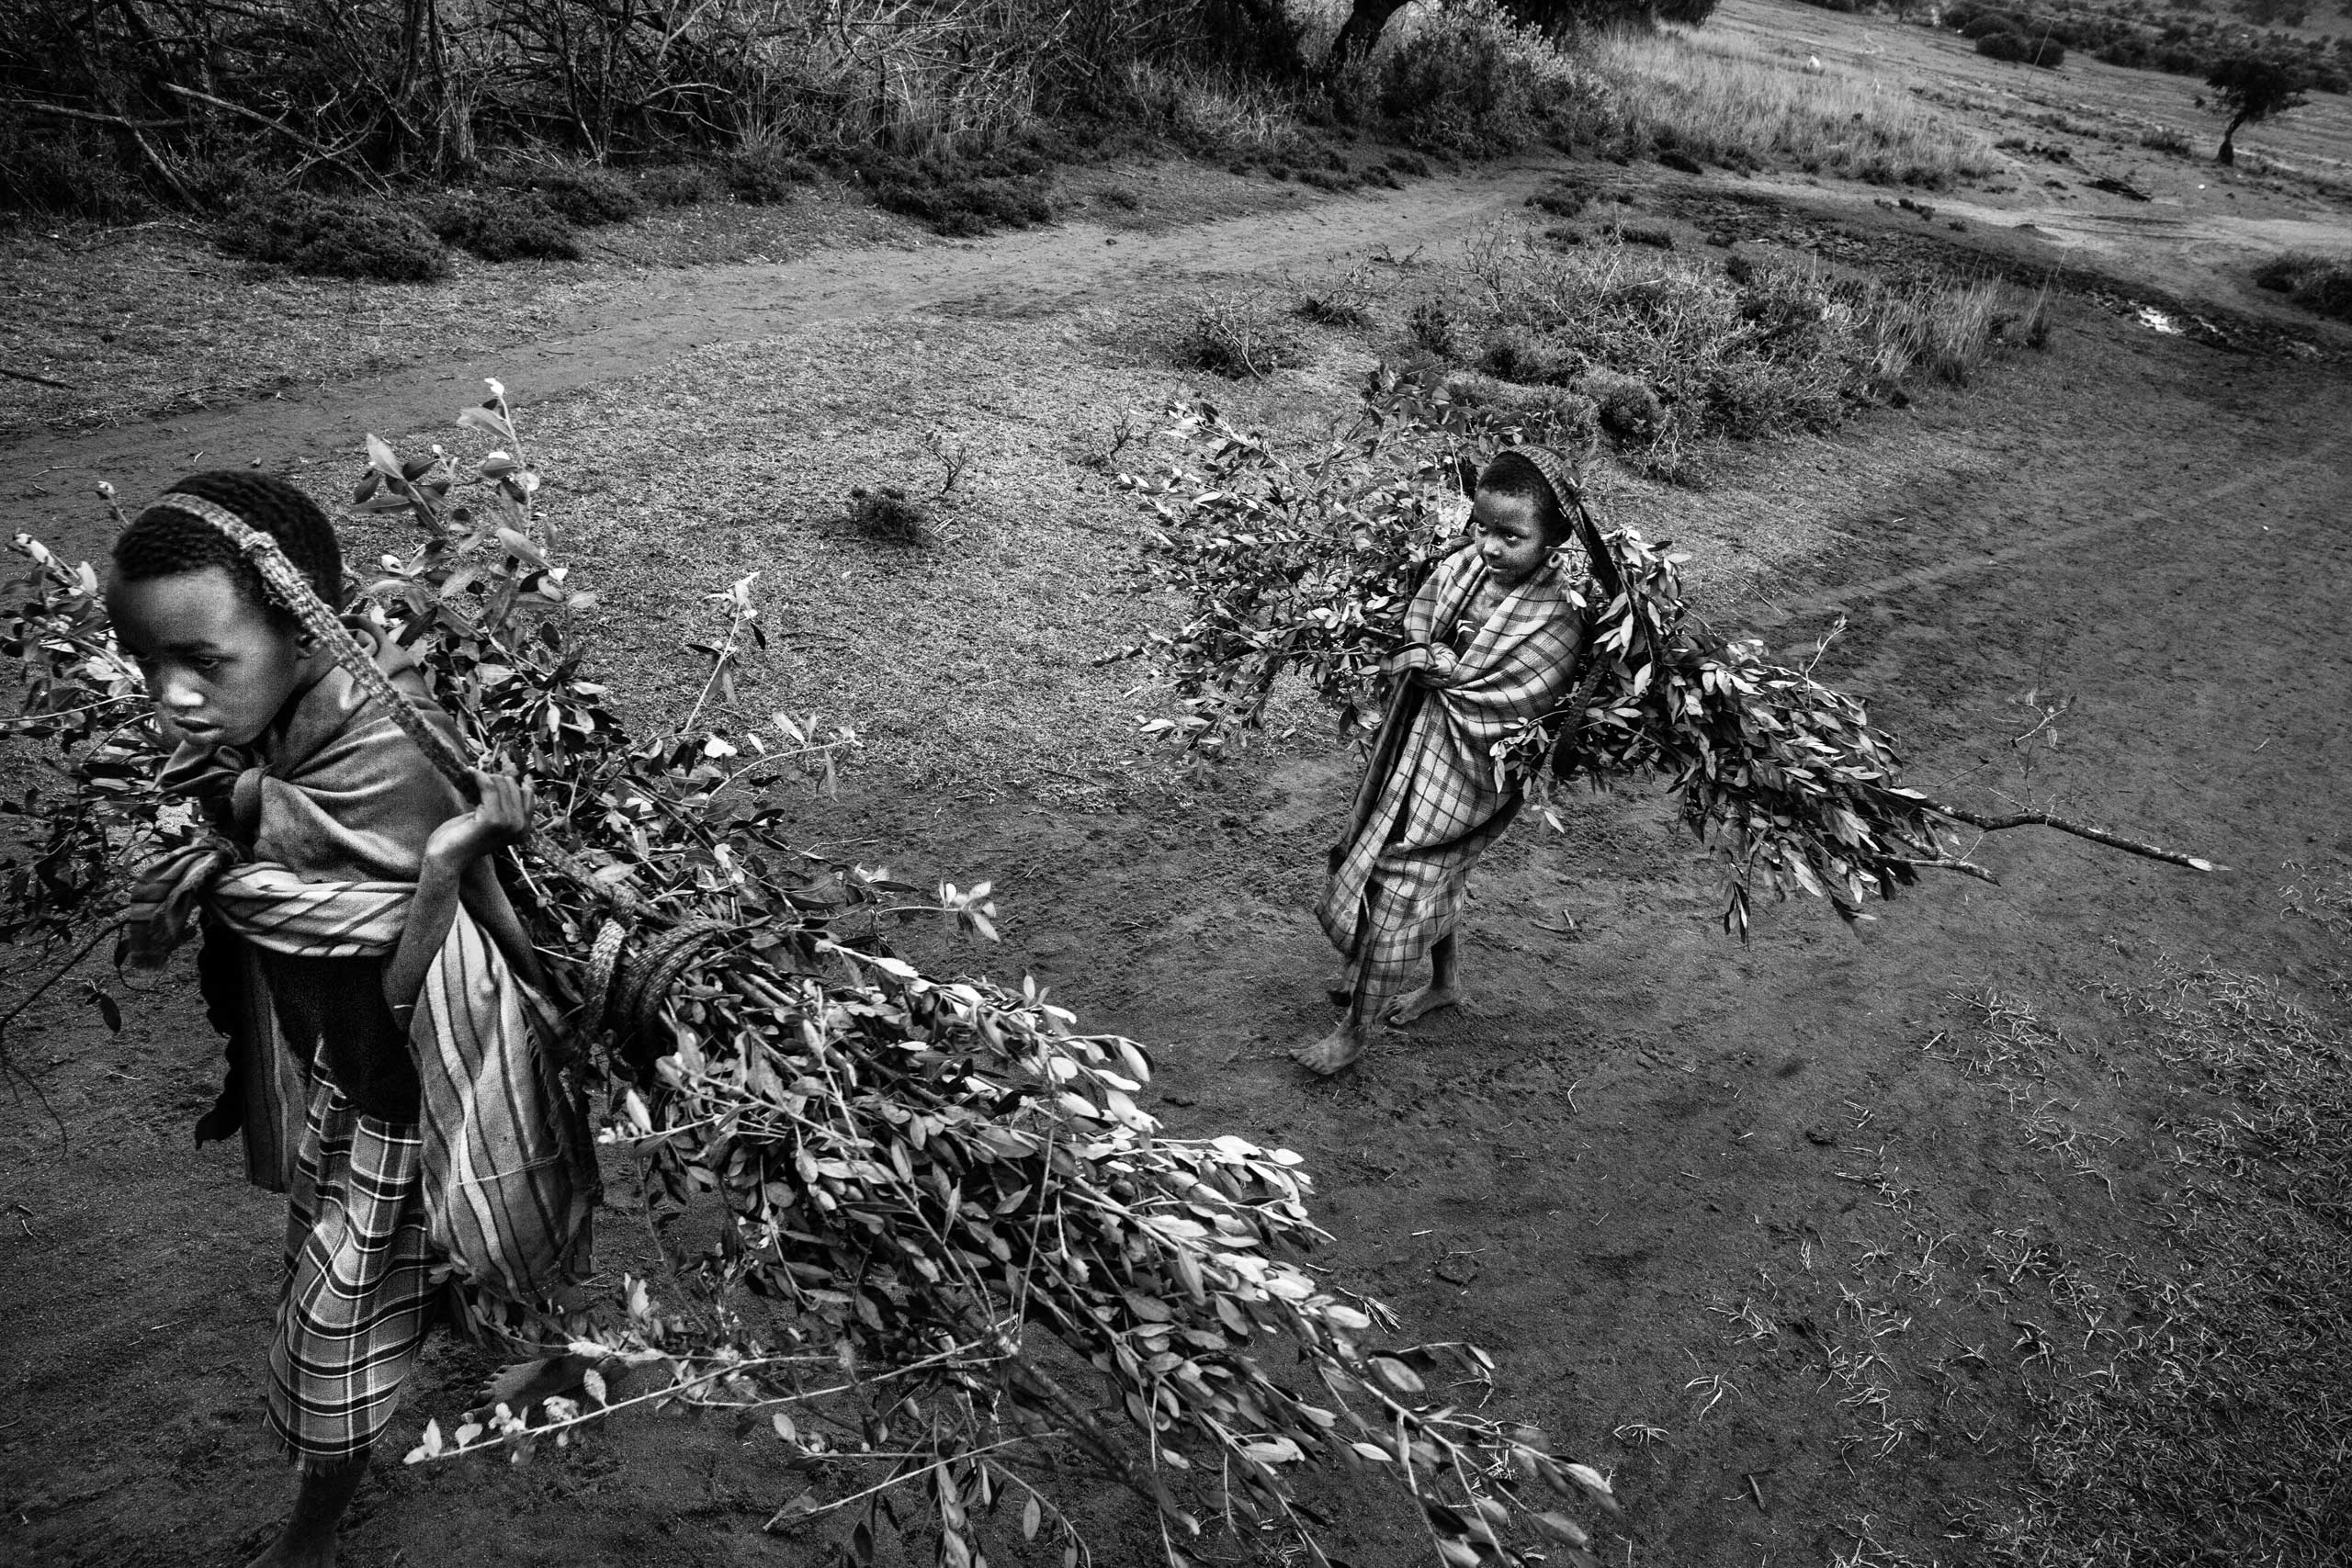 Two children carry tree branches for the circumcision ritual.